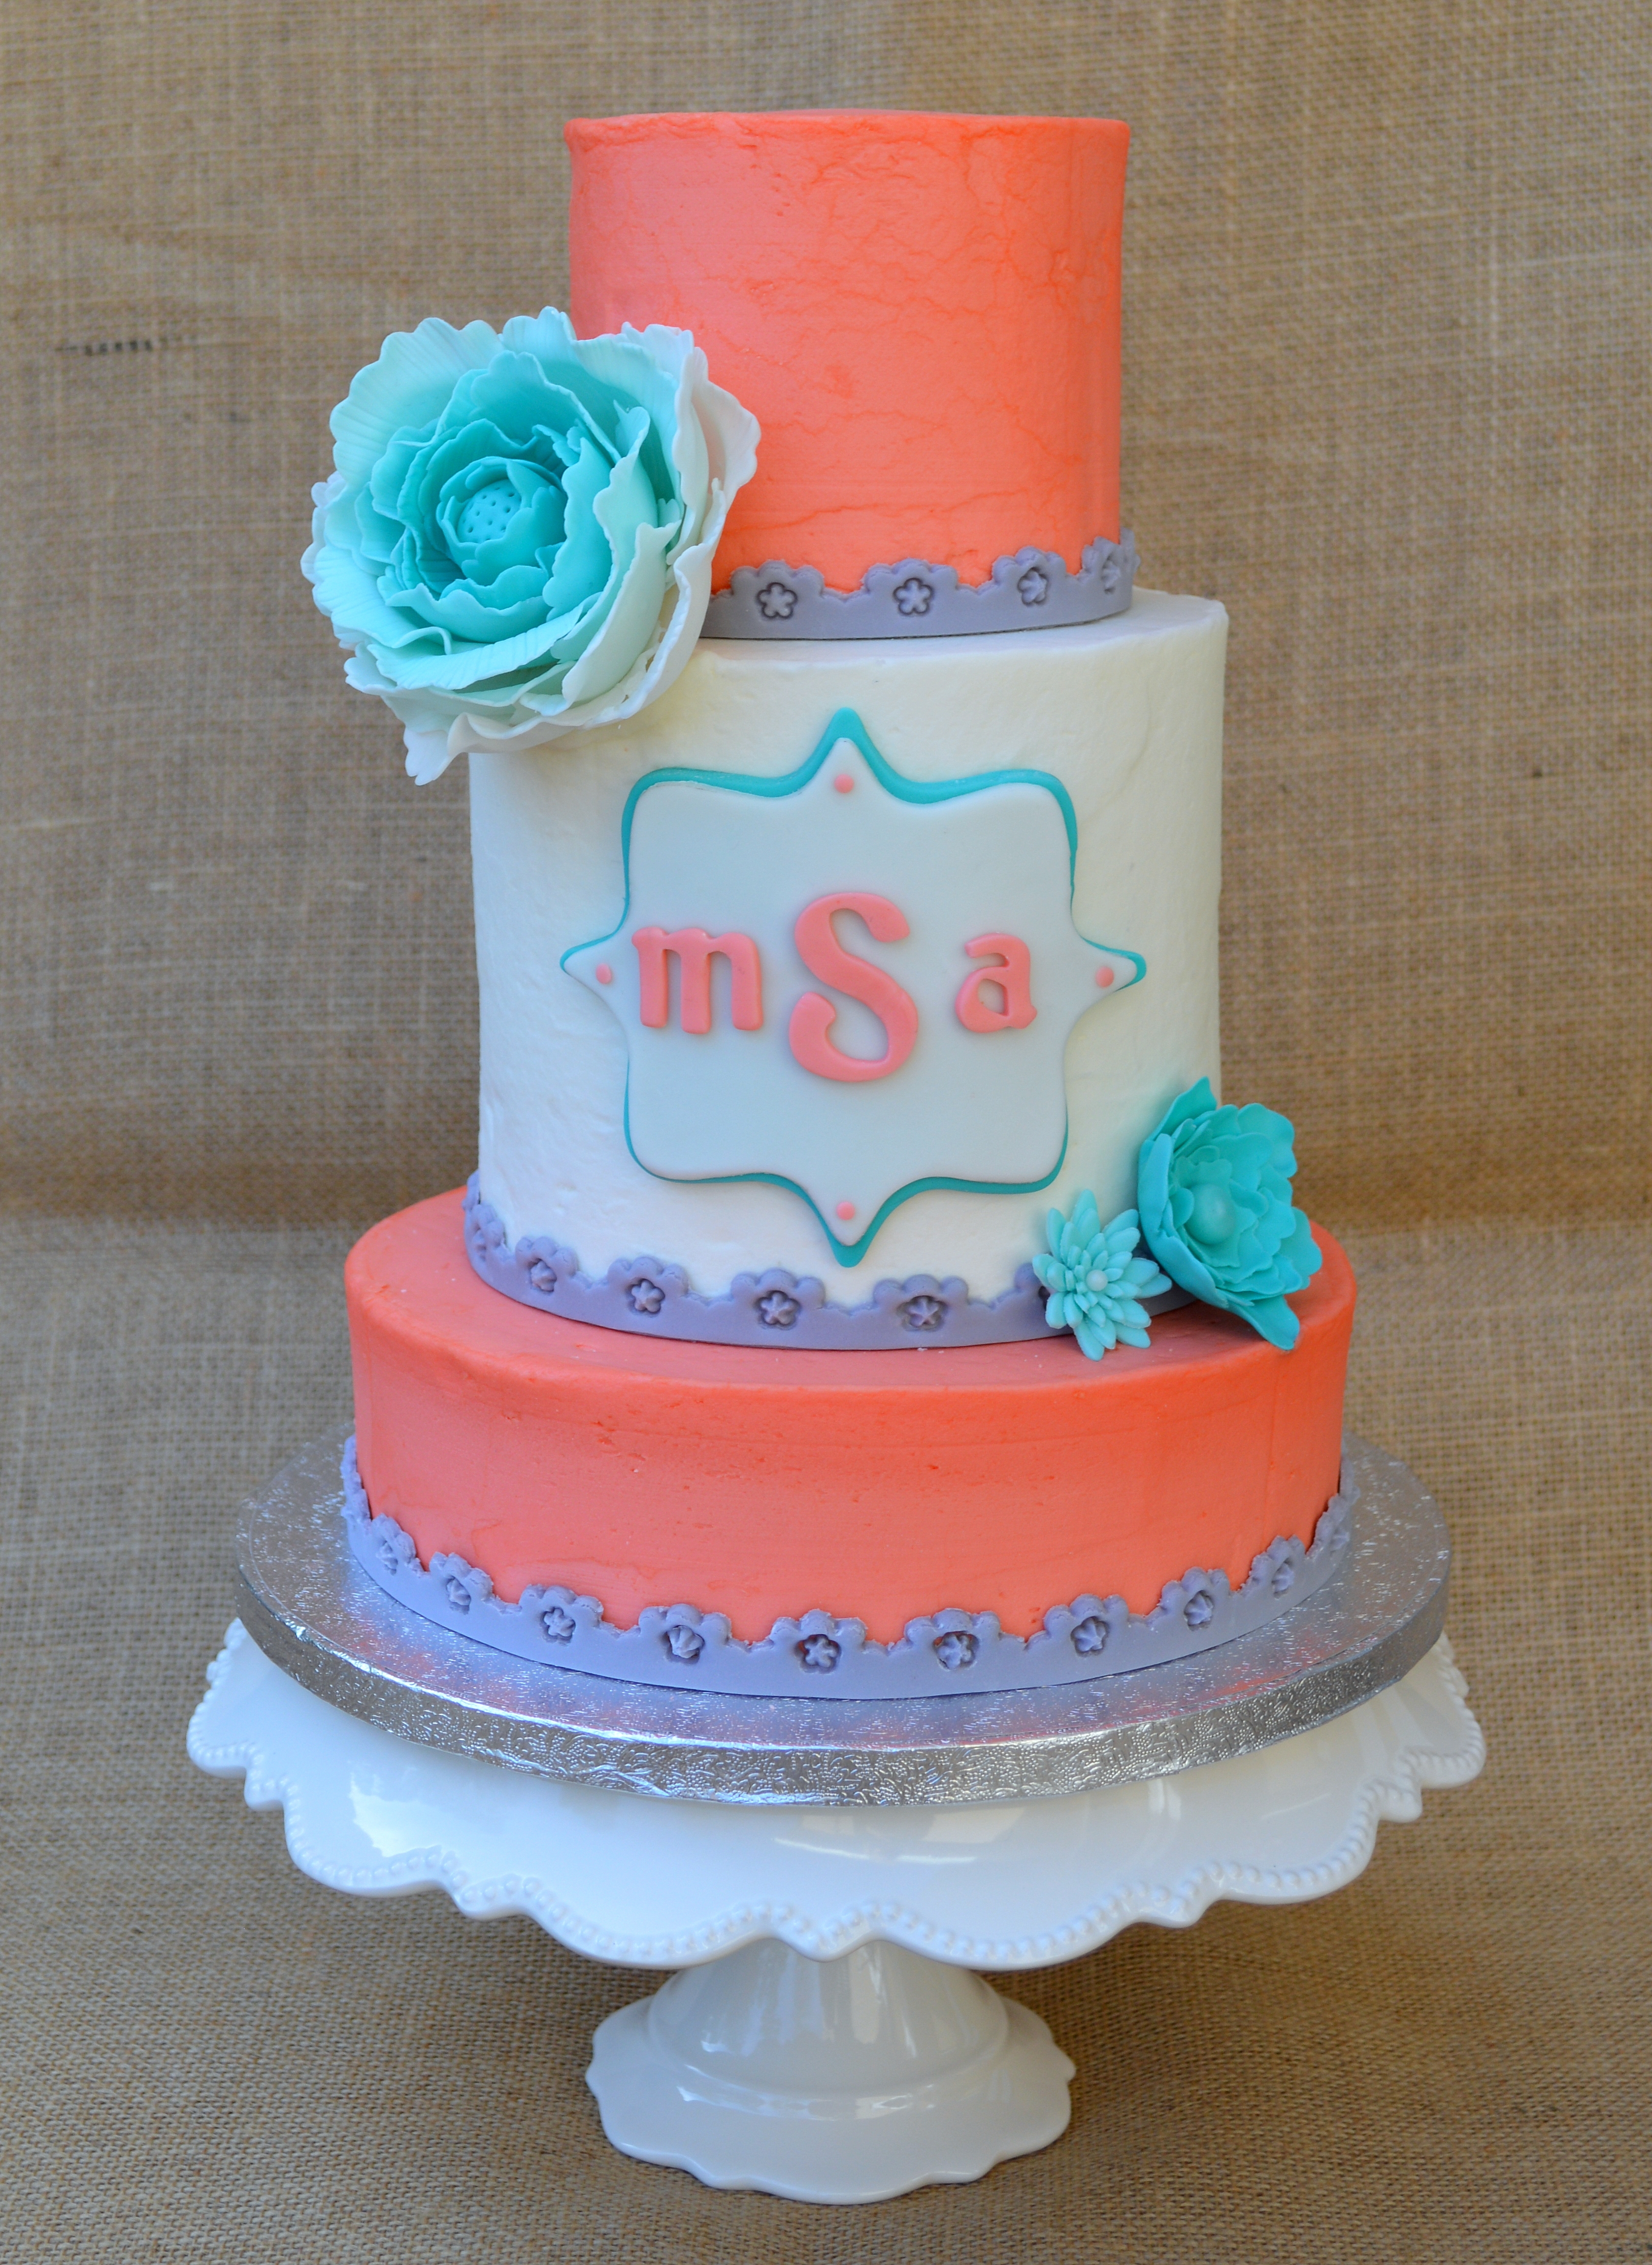 Coral, Gray, And Turquoise Cake